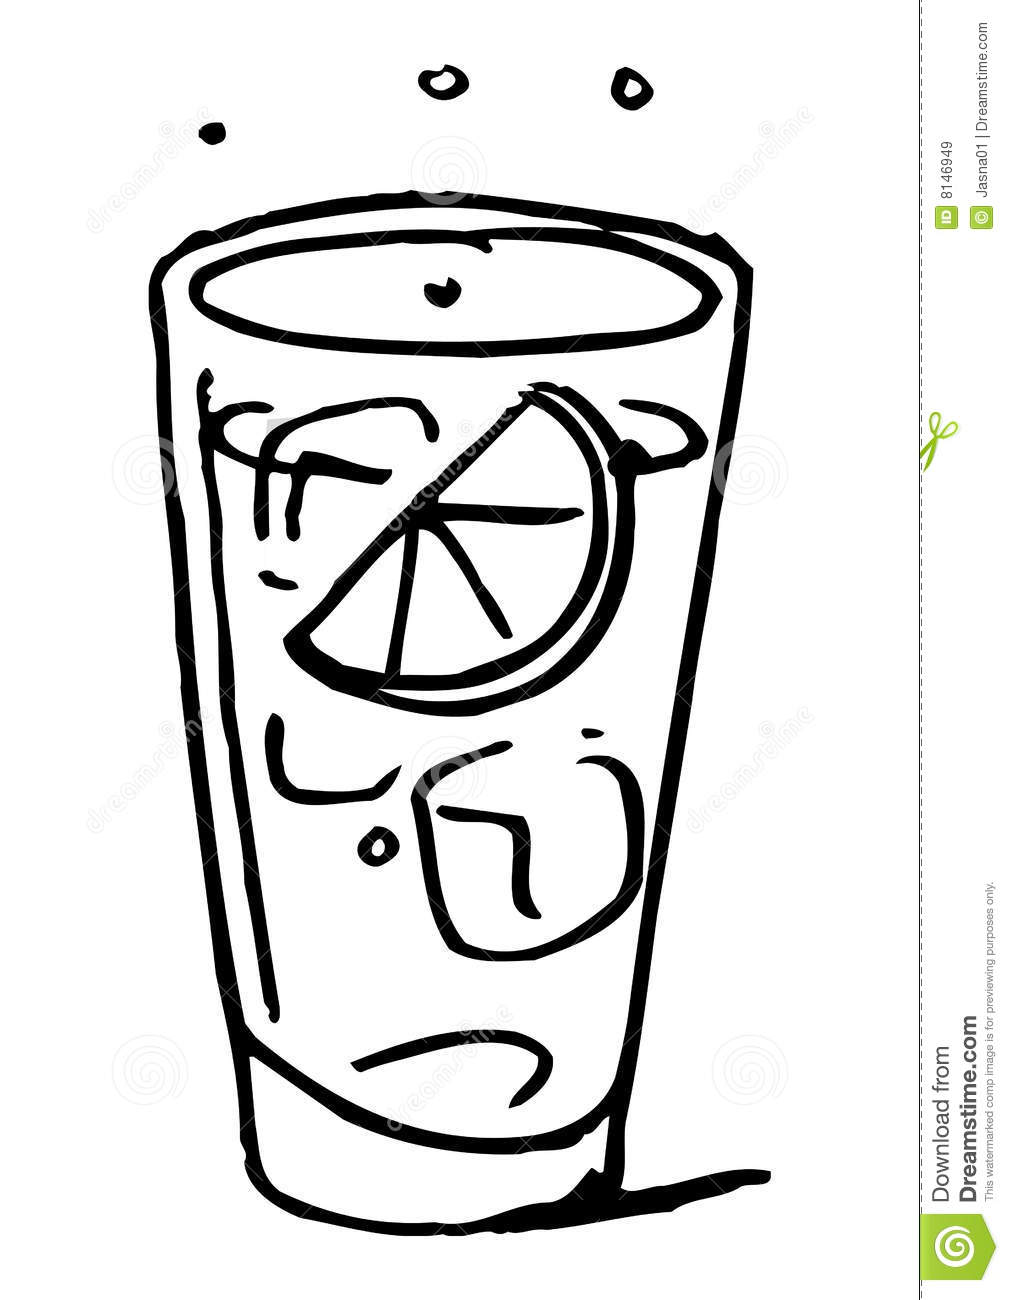 iced teas coloring pages - photo#18